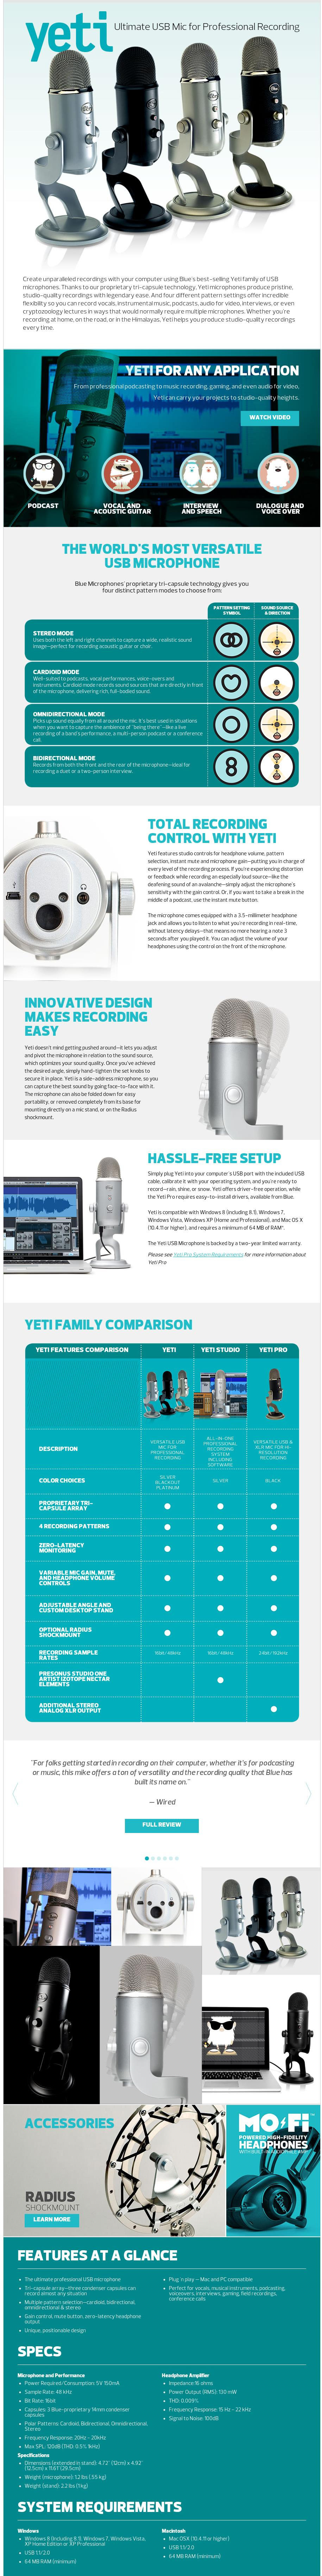 A large marketing image providing additional information about the product Blue Microphones Yeti 'Blackout' USB Desktop Microphone - Additional alt info not provided